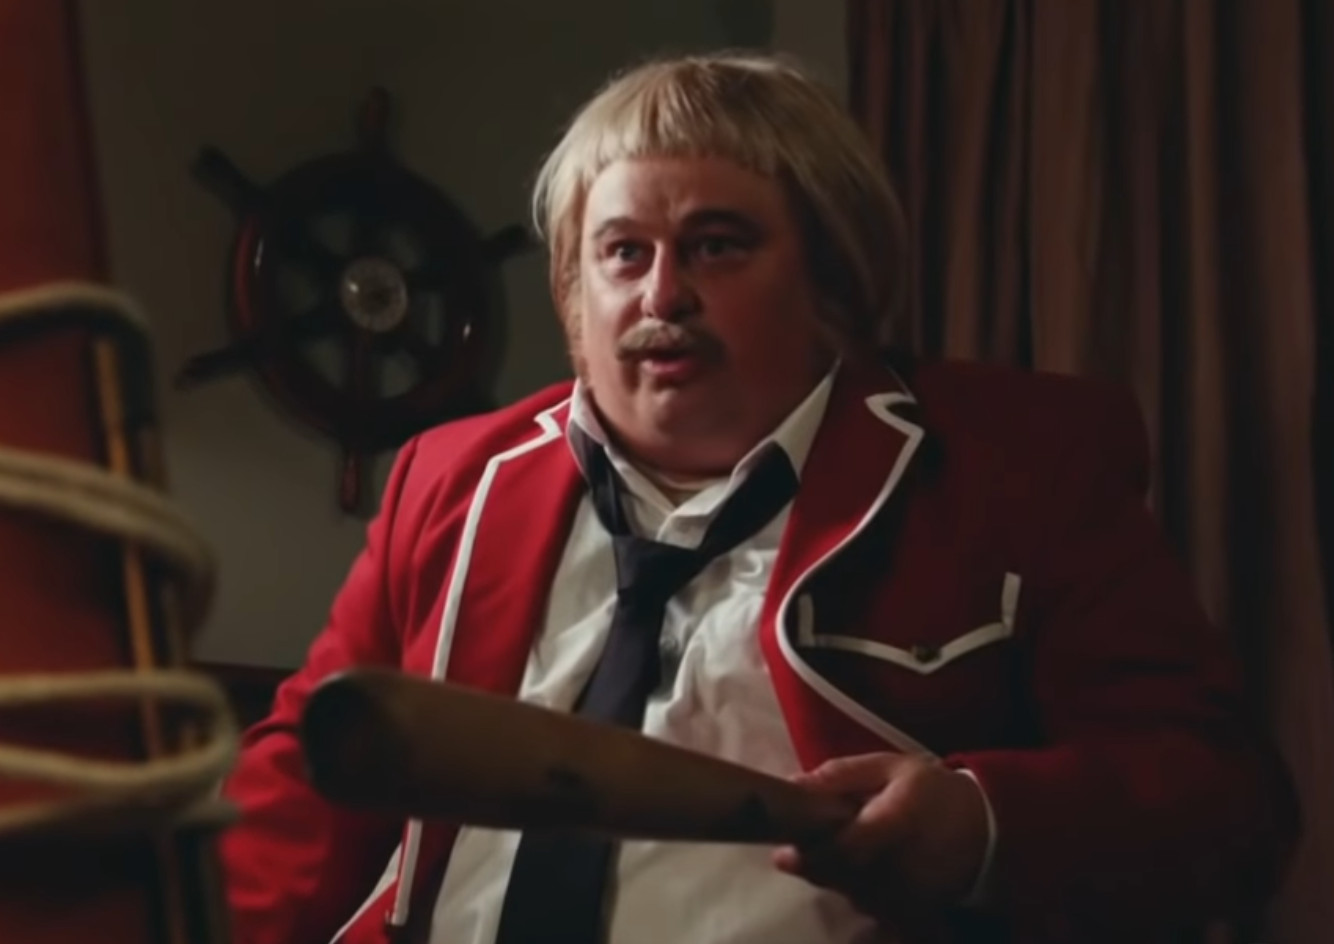 Video Chicago Actor Plays Vicious Captain Kangaroo In Mr Rogers Parody On Jimmy Kimmel Live Chicago Sun Times